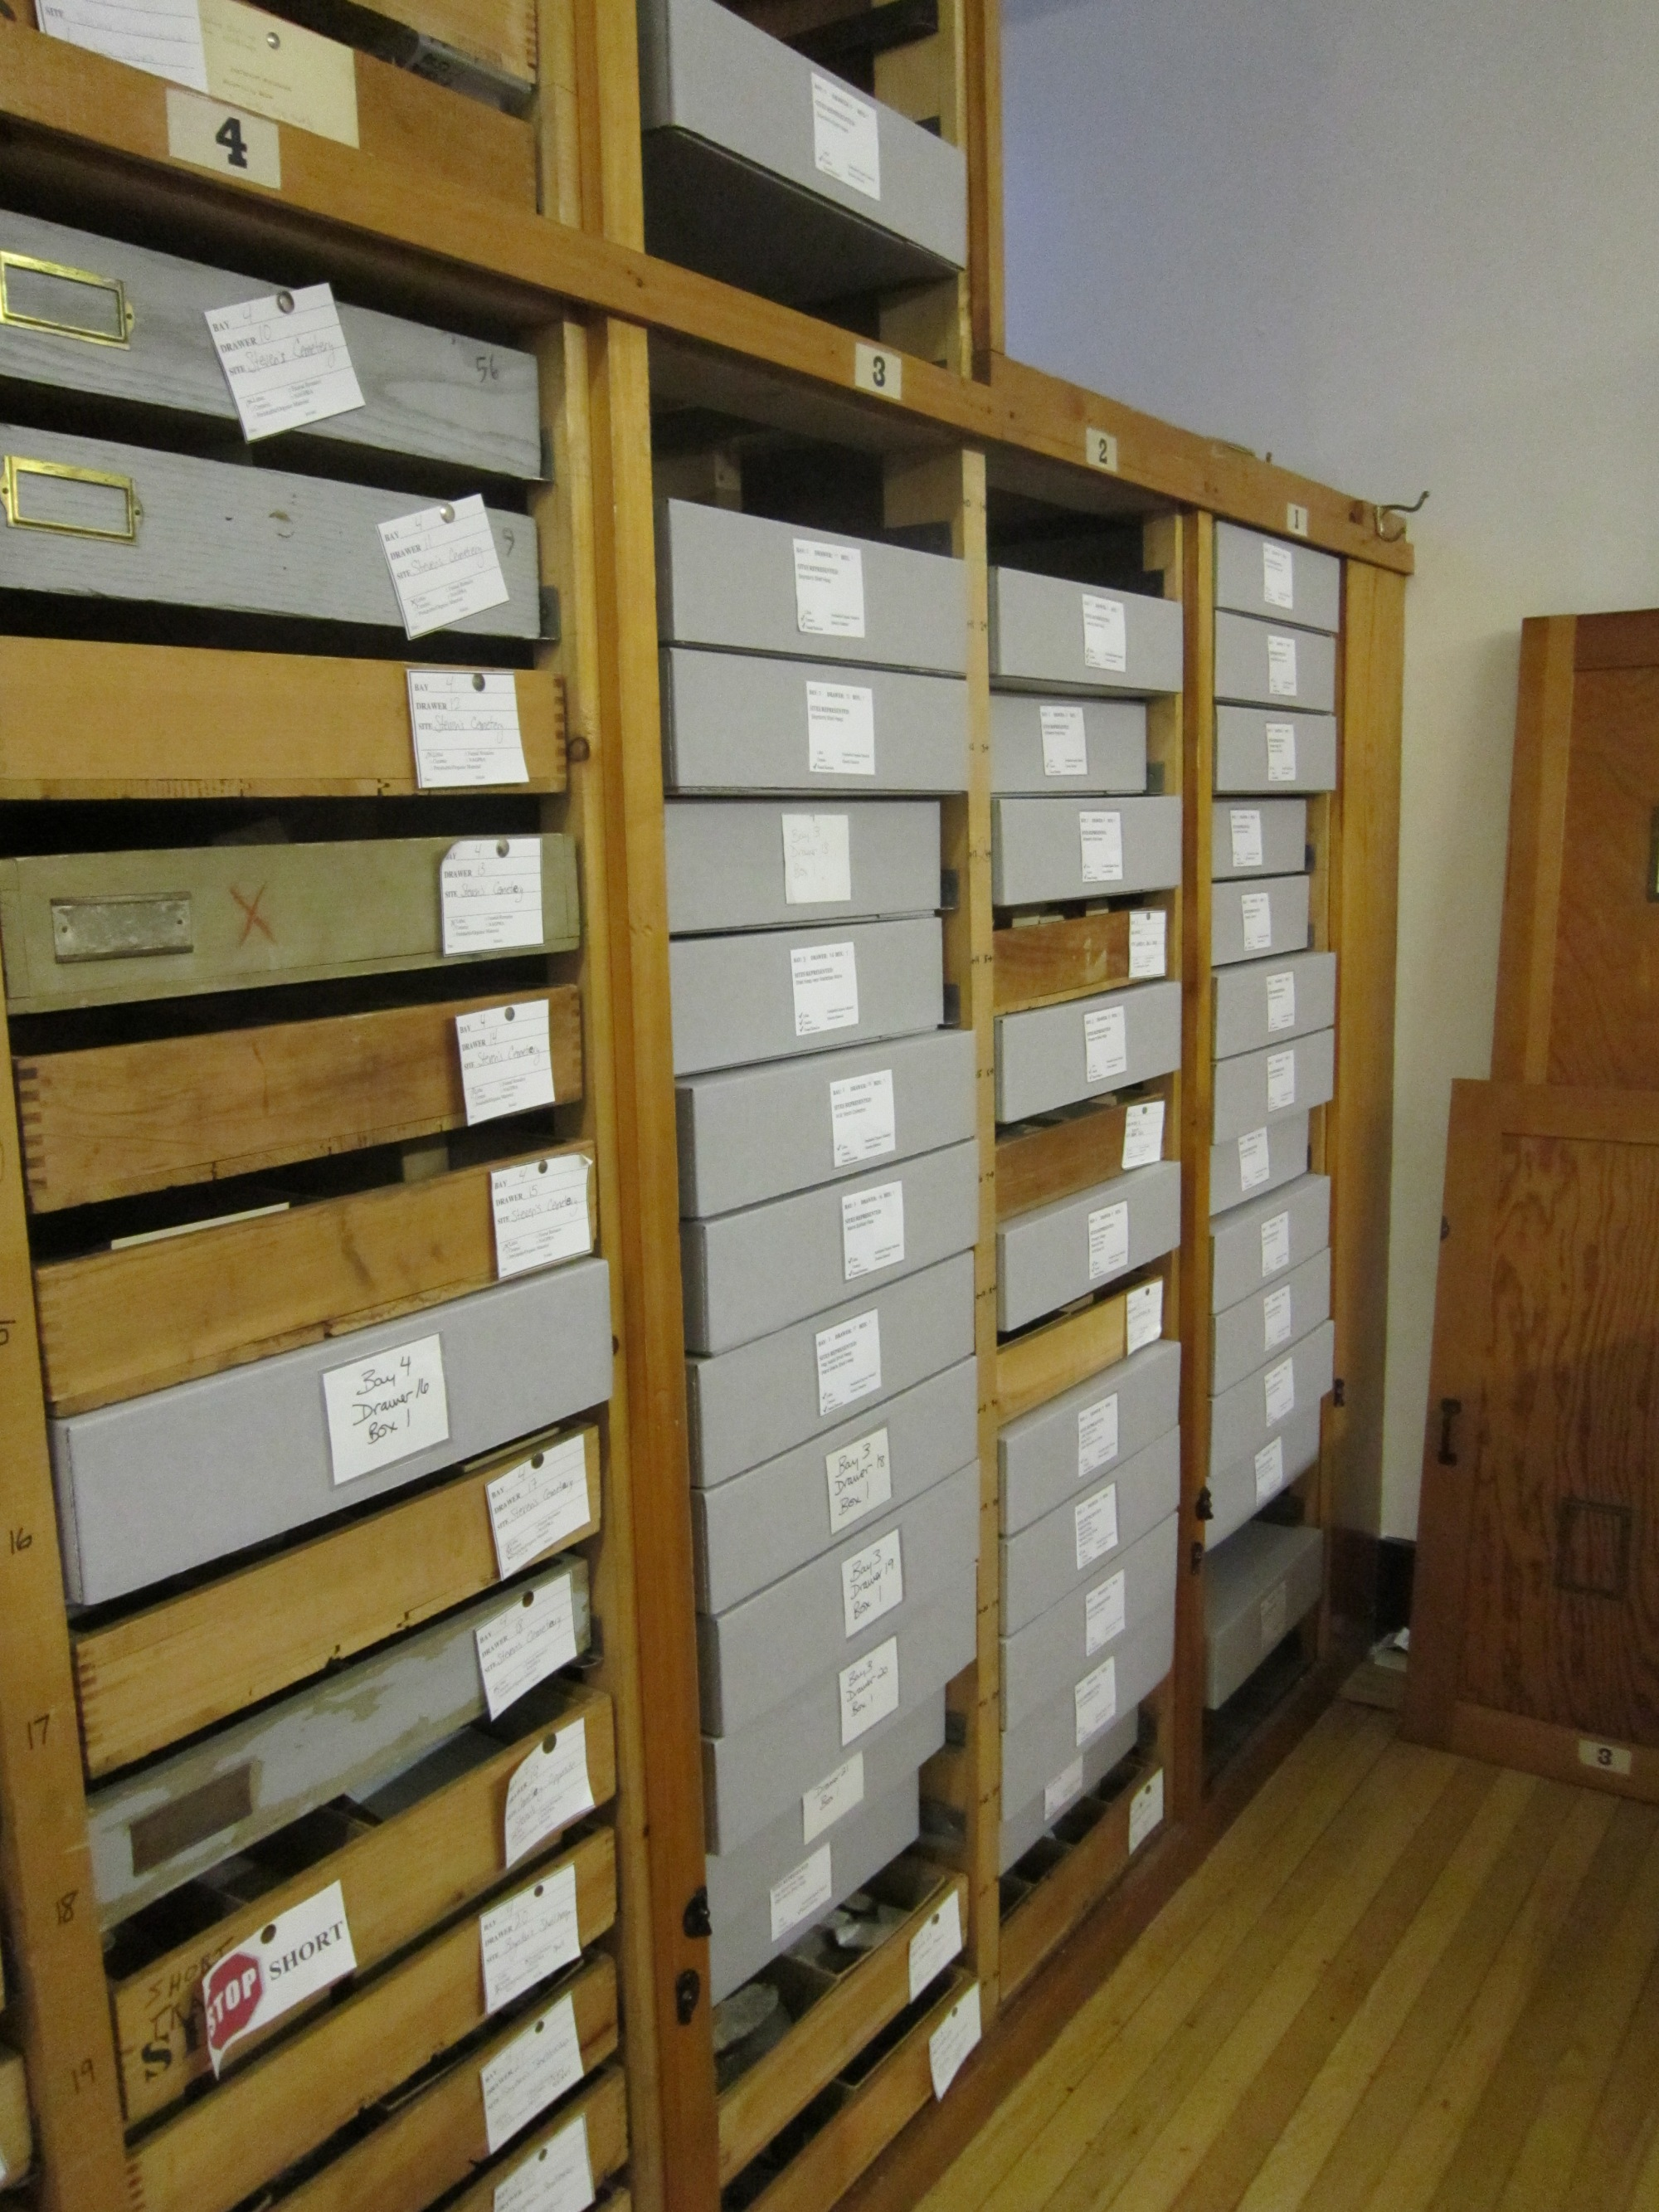 A storage bay with a mixture of drawers and boxes